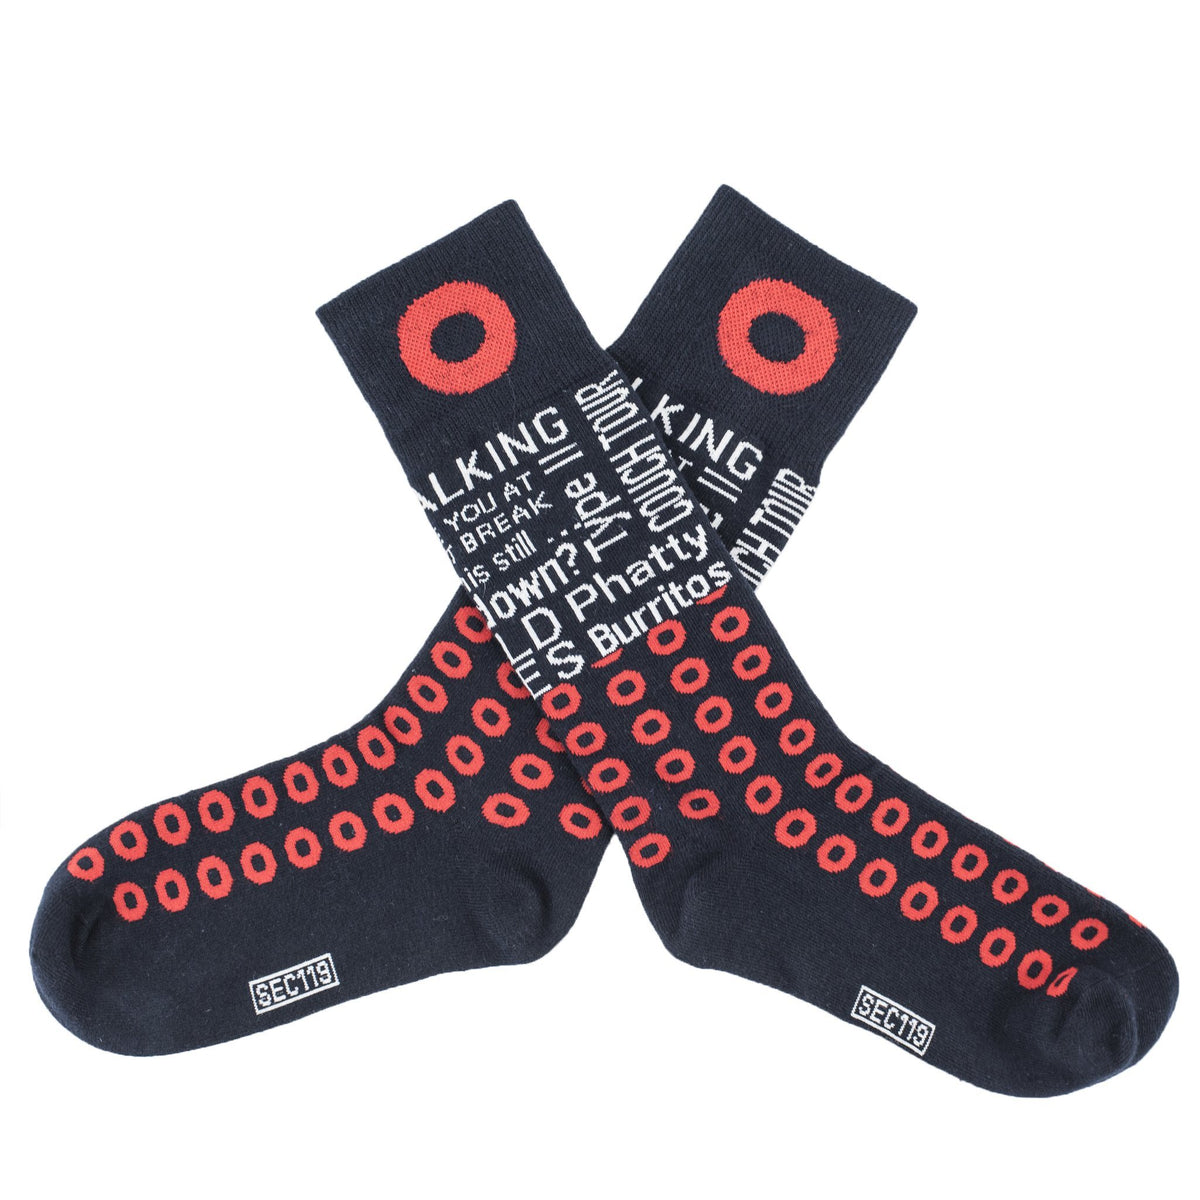 Donut 3 Pack Sock Bundle - Section 119